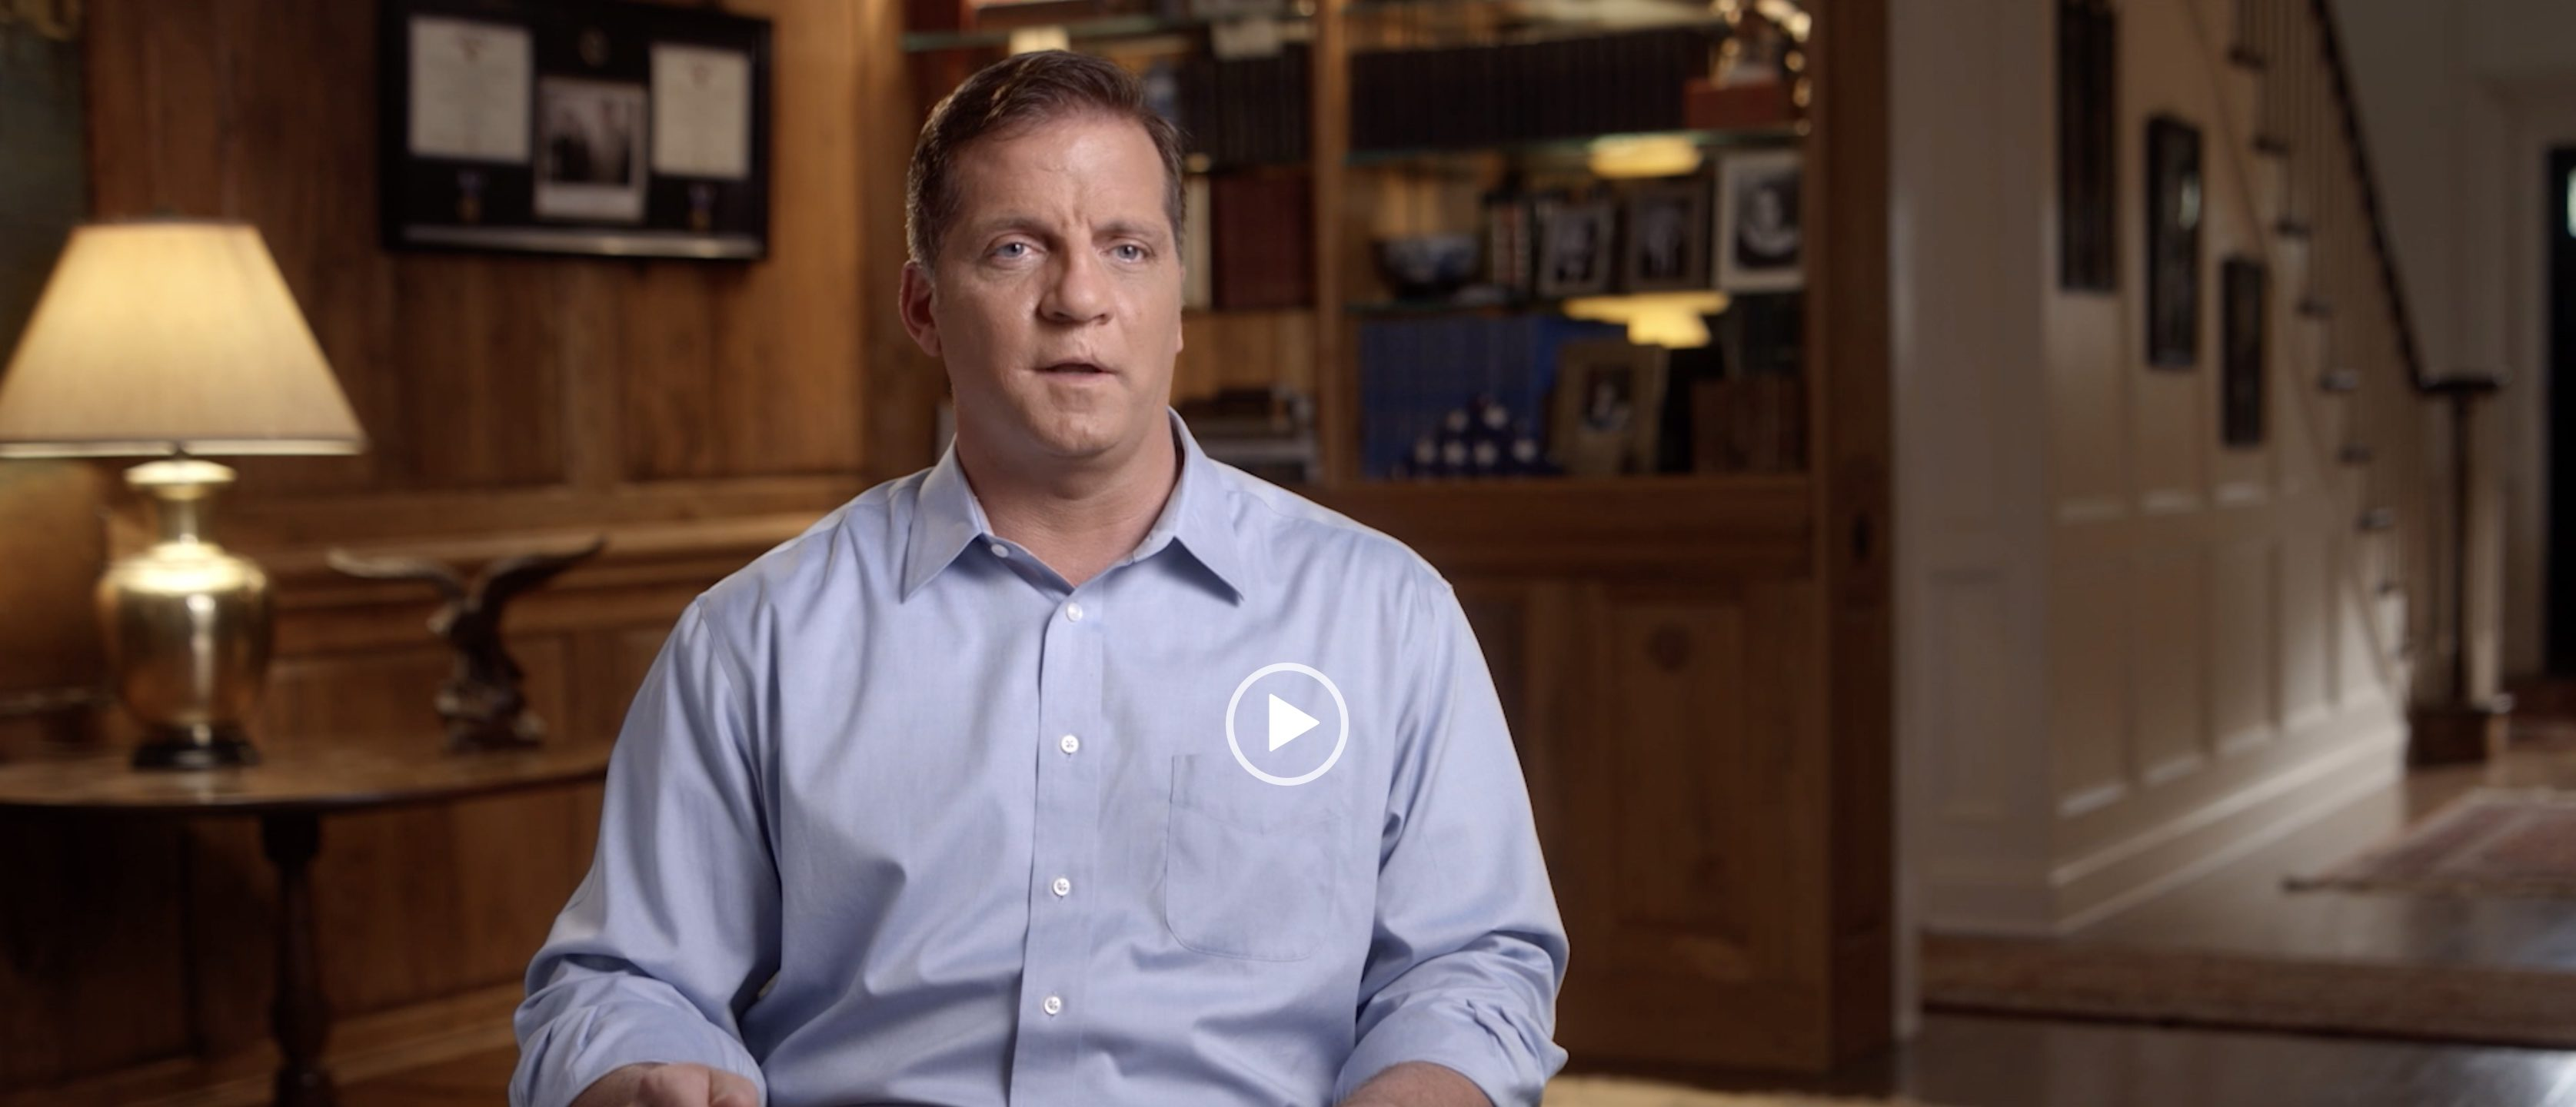 'Stand Taller On One Leg': Veteran Amputee Running For Senate Launches Ad Attacking 'Violent, Left-Wing Extremists'